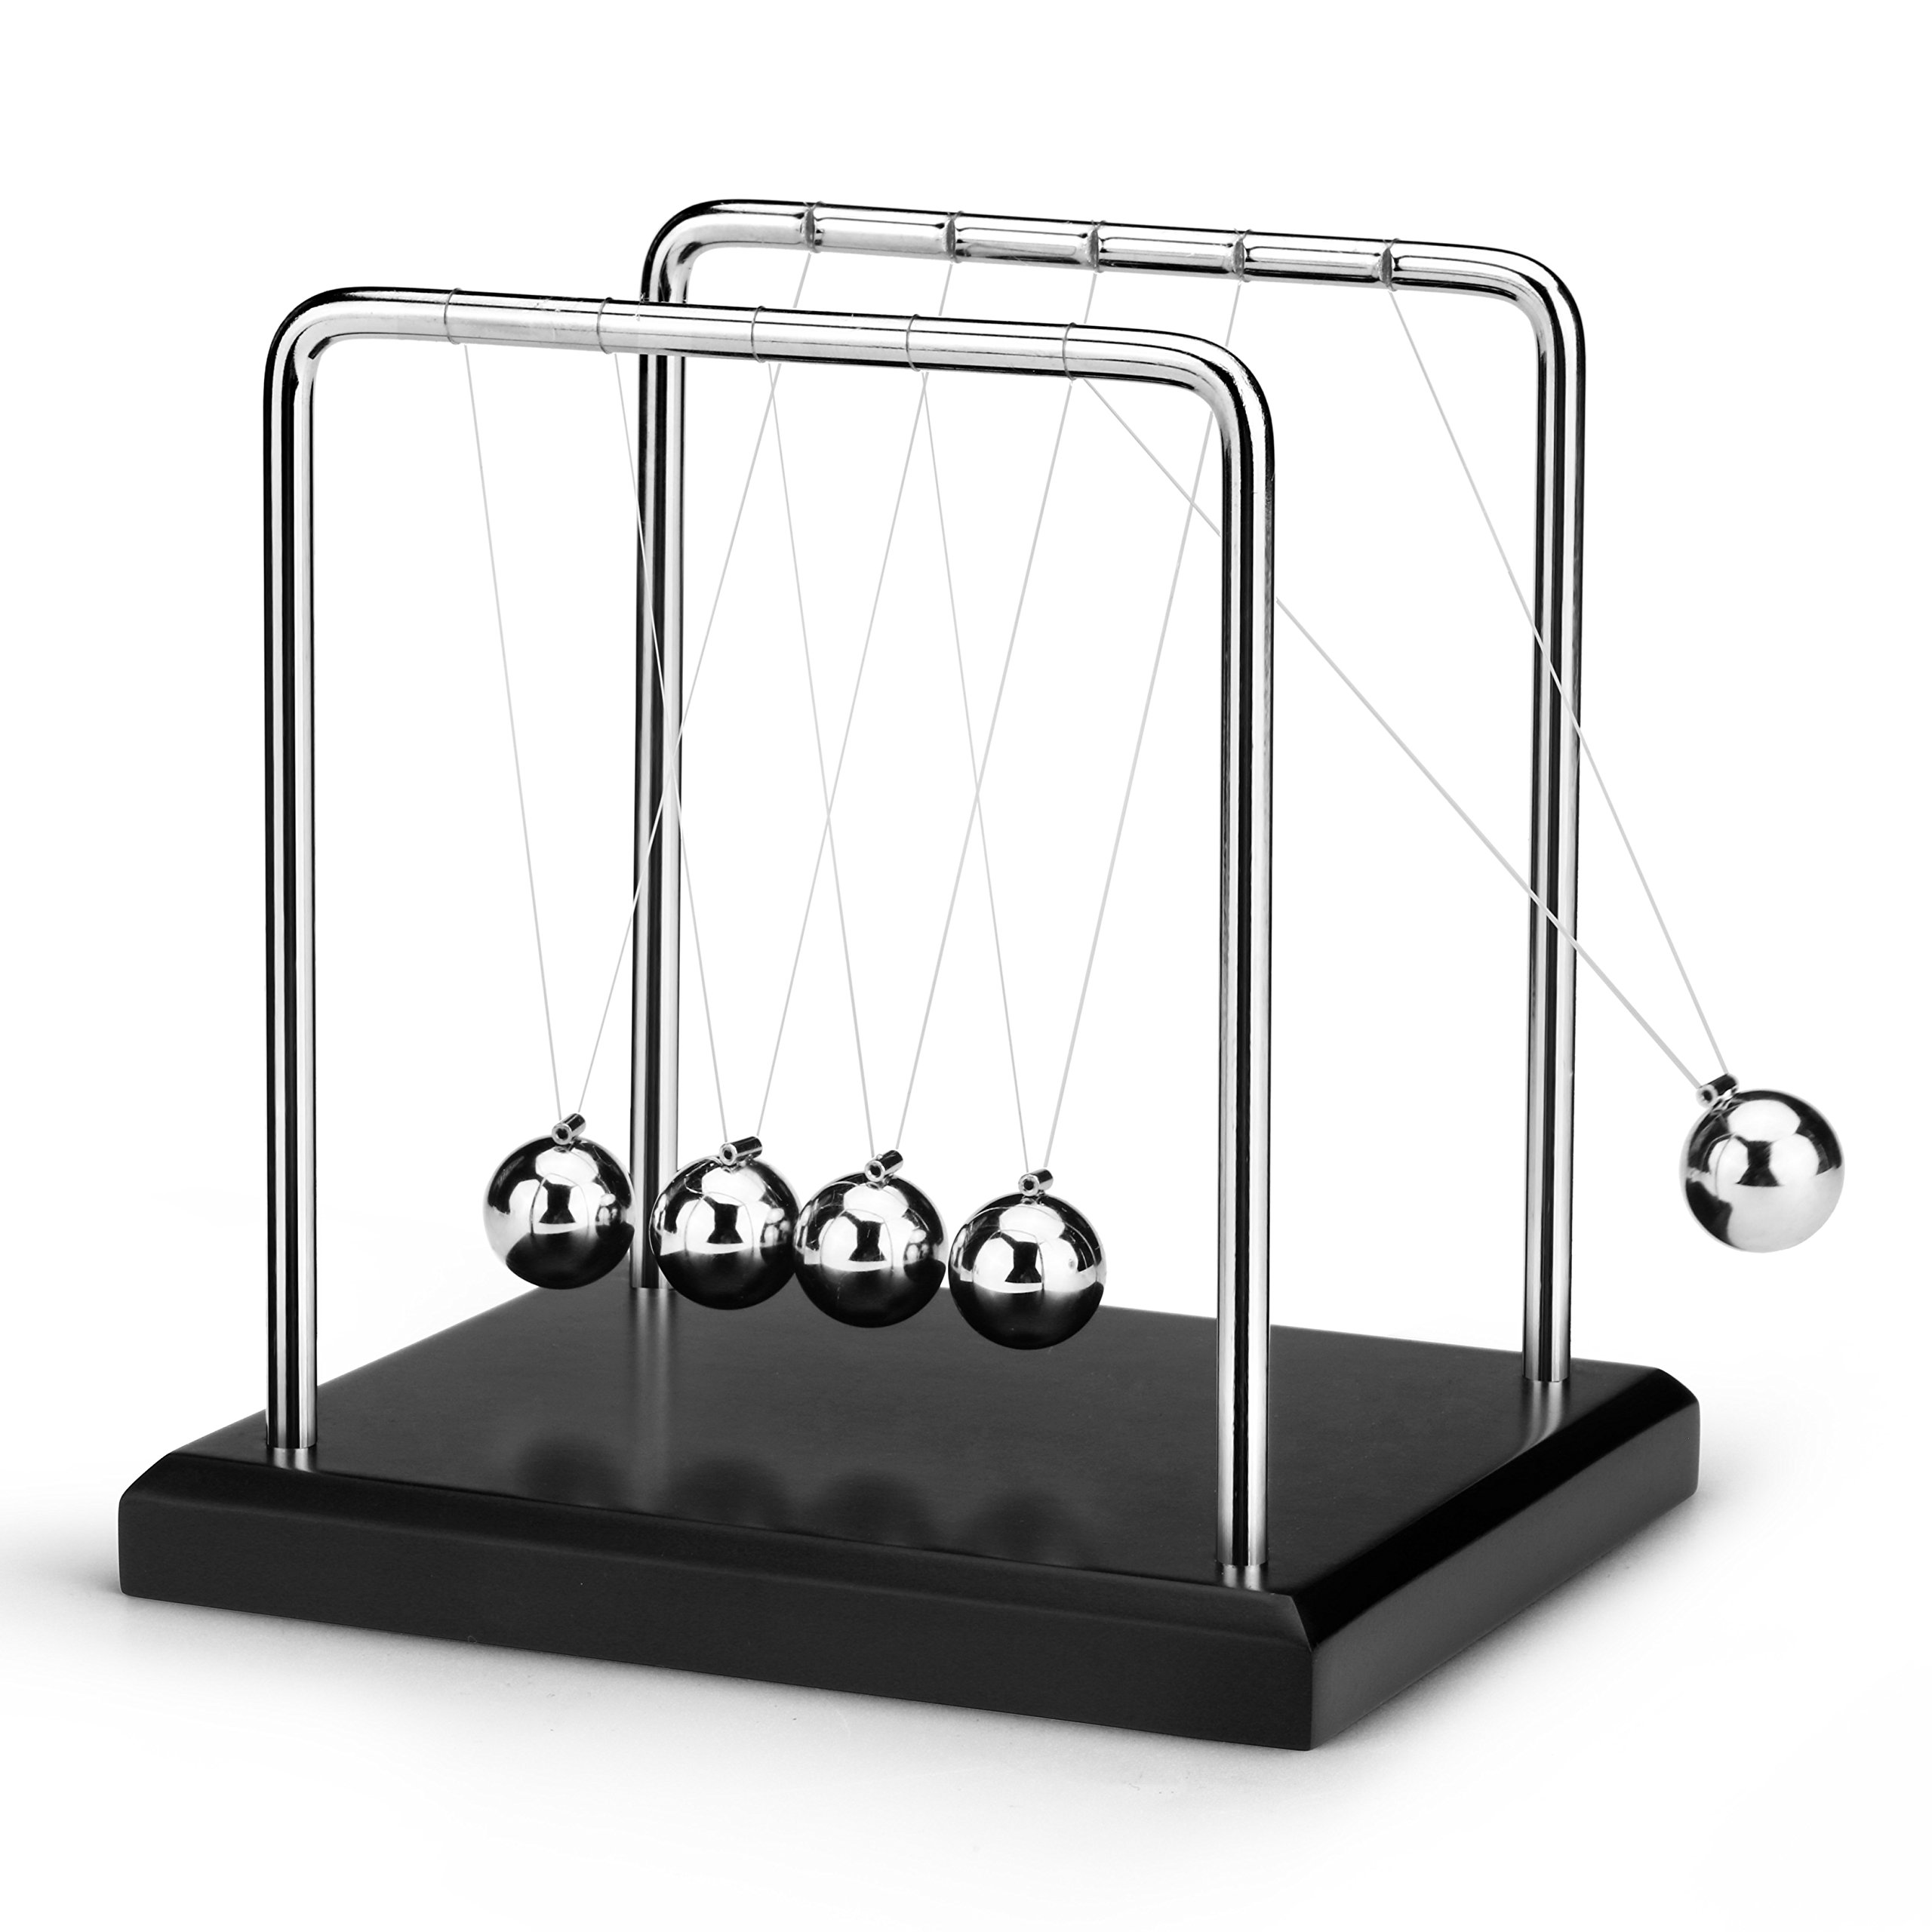 ScienceGeek Classic Newton's Cradle Balance Balls Desk Toy Home Decoration by ScienceGeek